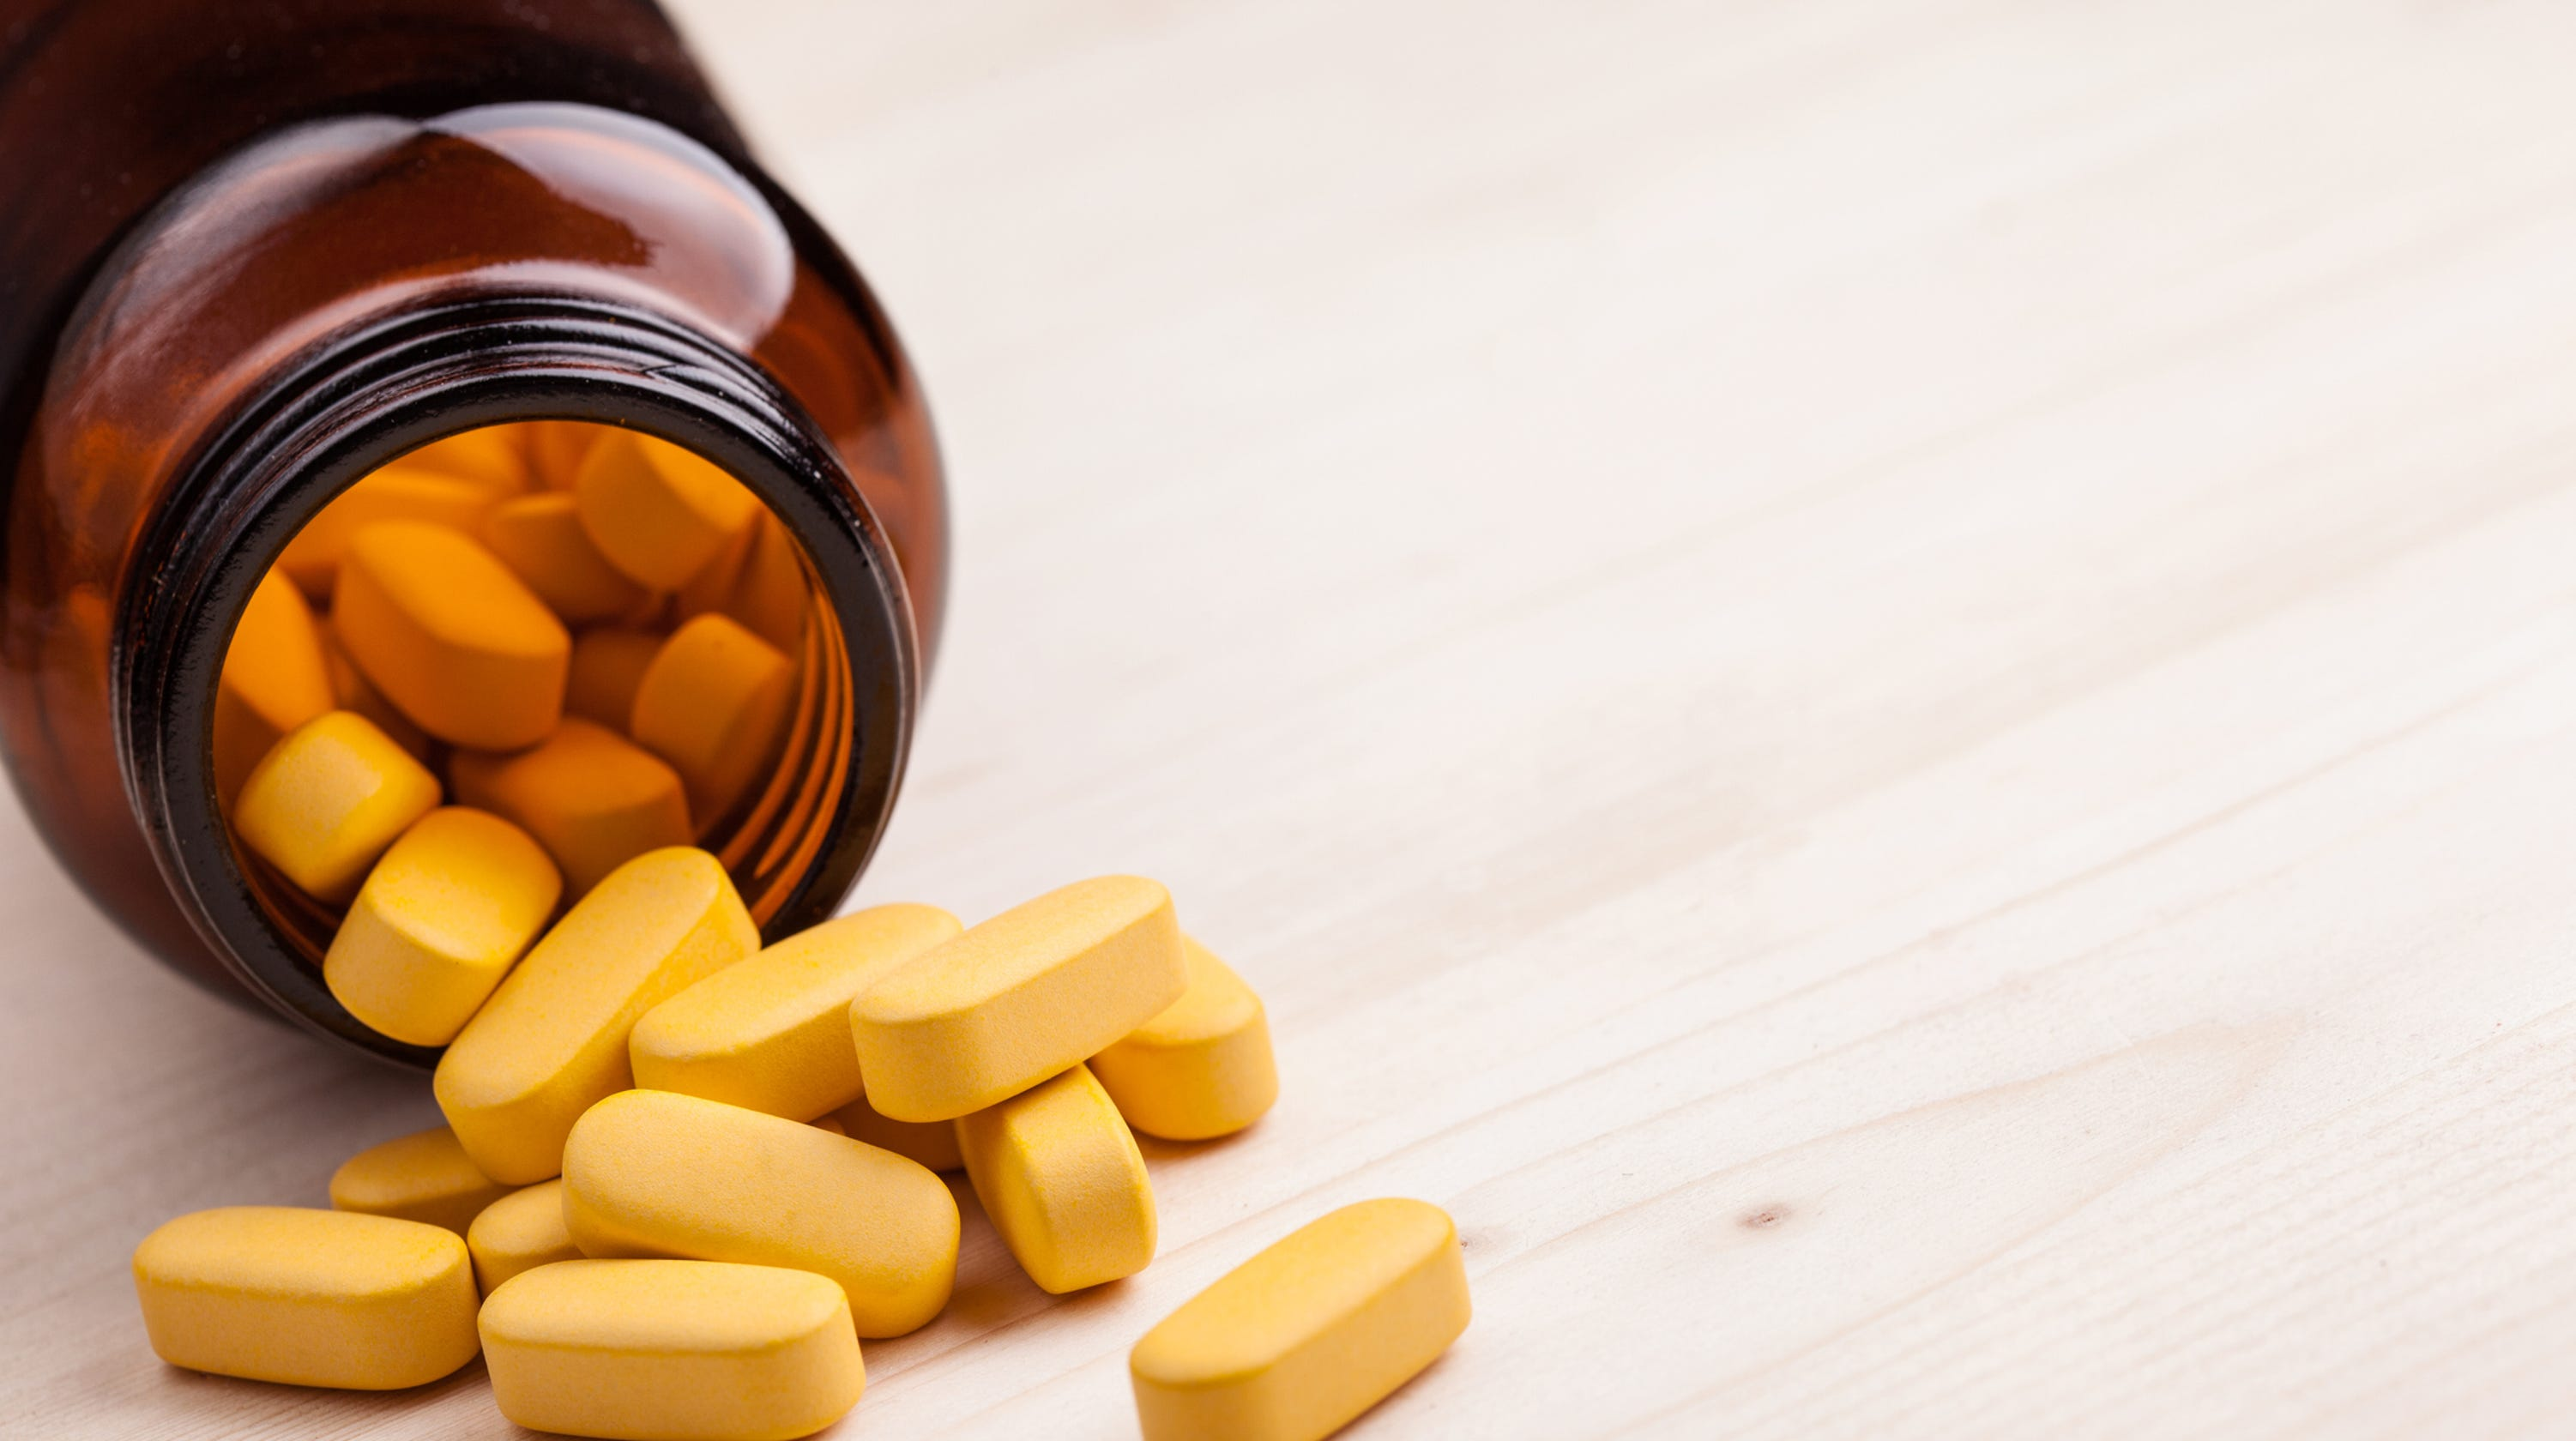 Fda Says Taking Supplements With Vinpocetine Can Cause Miscarriage